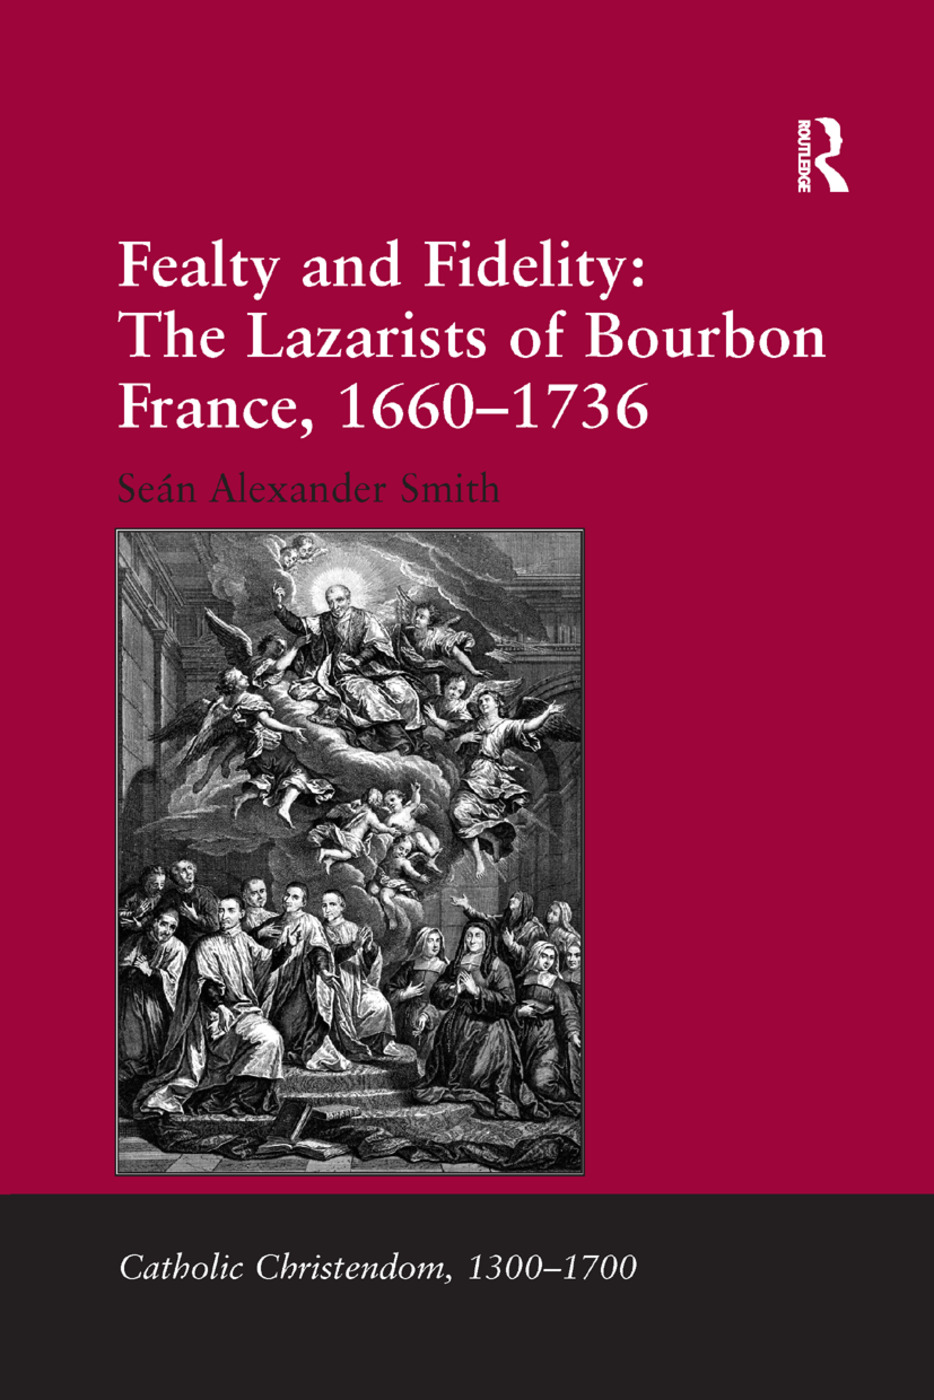 Fealty and Fidelity: The Lazarists of Bourbon France, 1660-1736: 1st Edition (Paperback) book cover